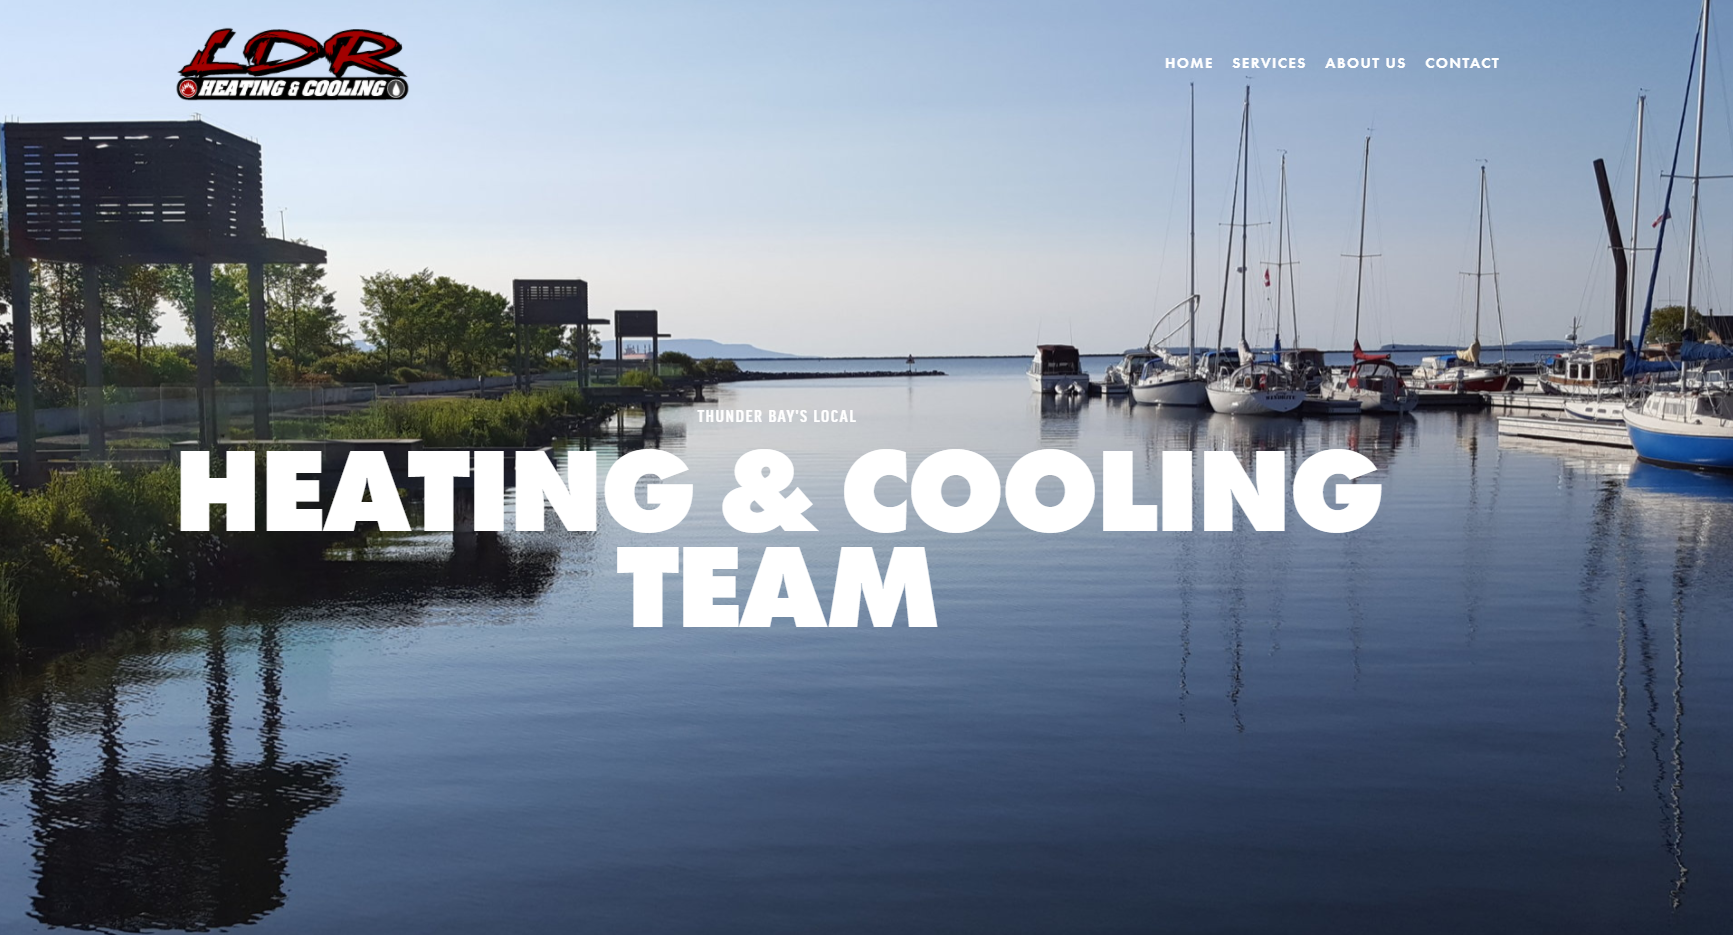 LDR Heating & Cooling